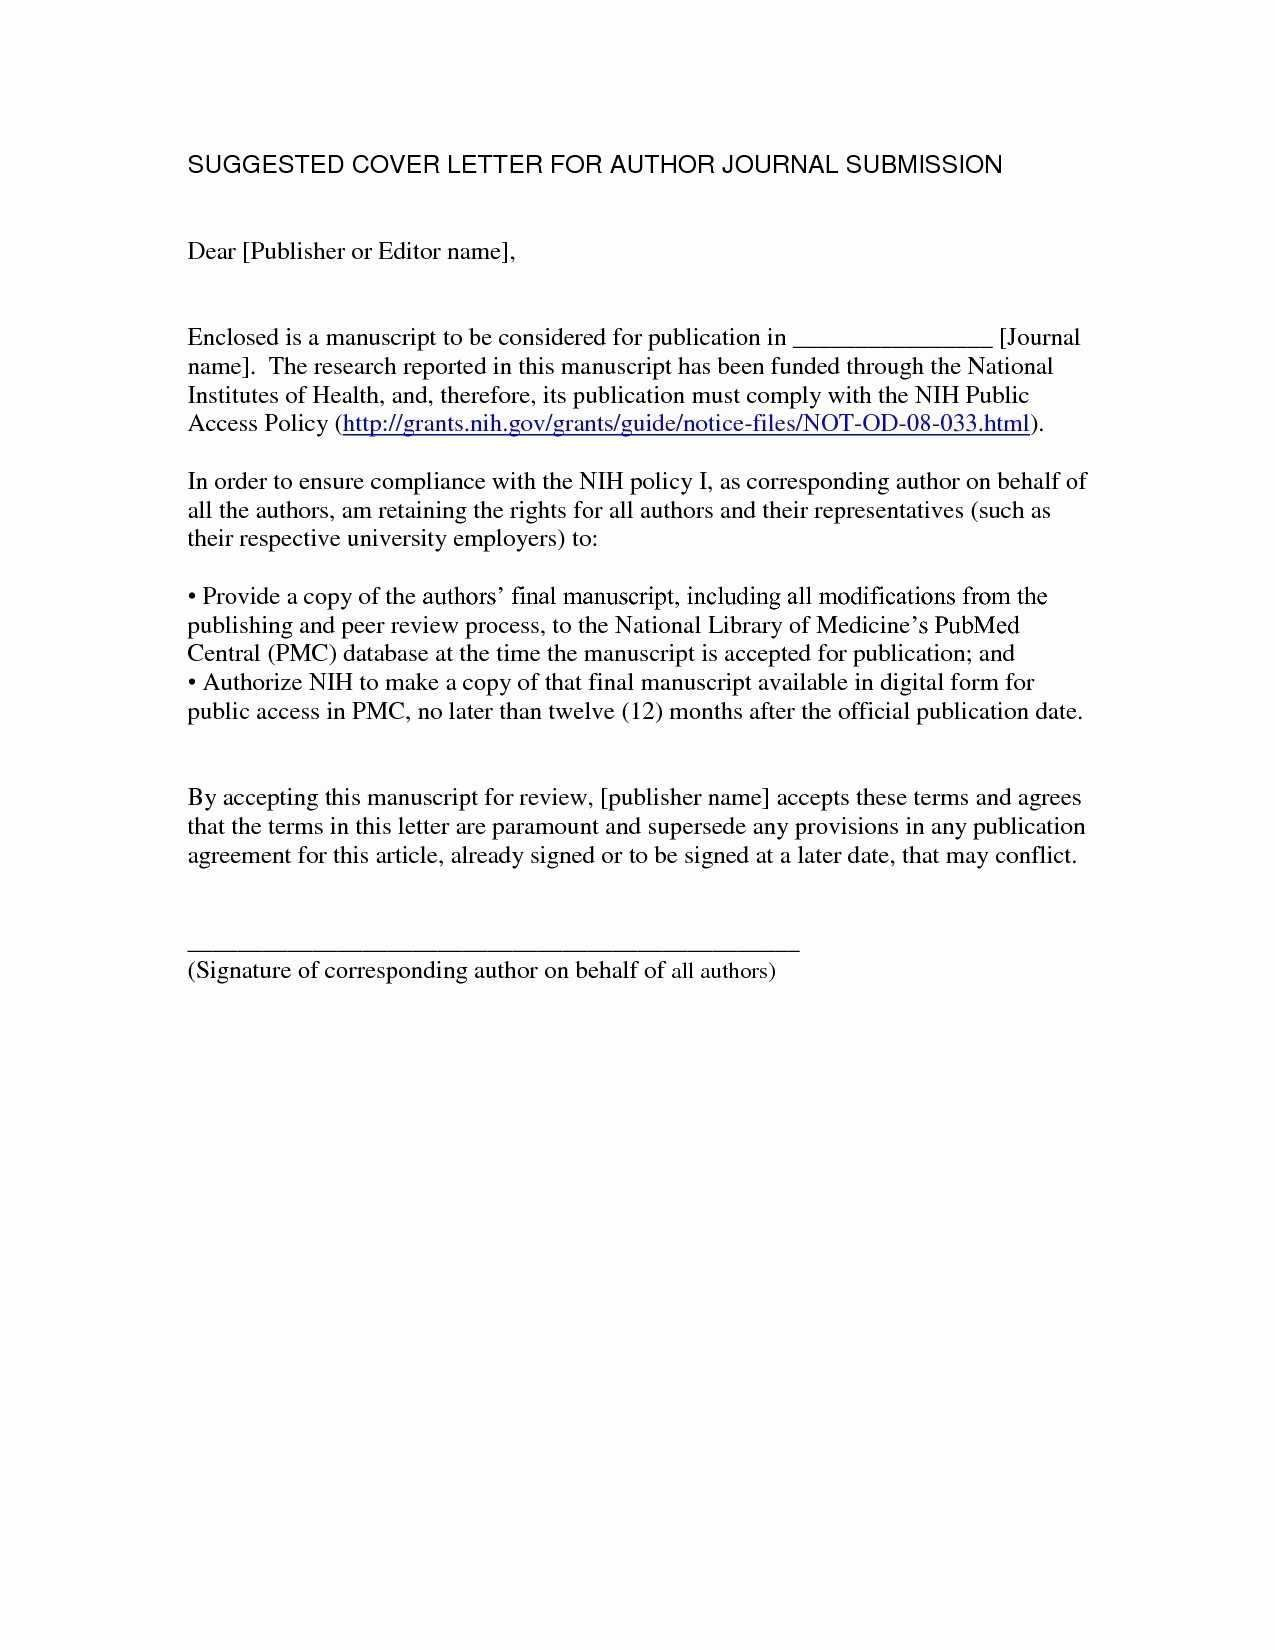 Hair Stylist Contract Template Best Of Salon Cancellation Policy Intended For Salon Cancellation Policy Template